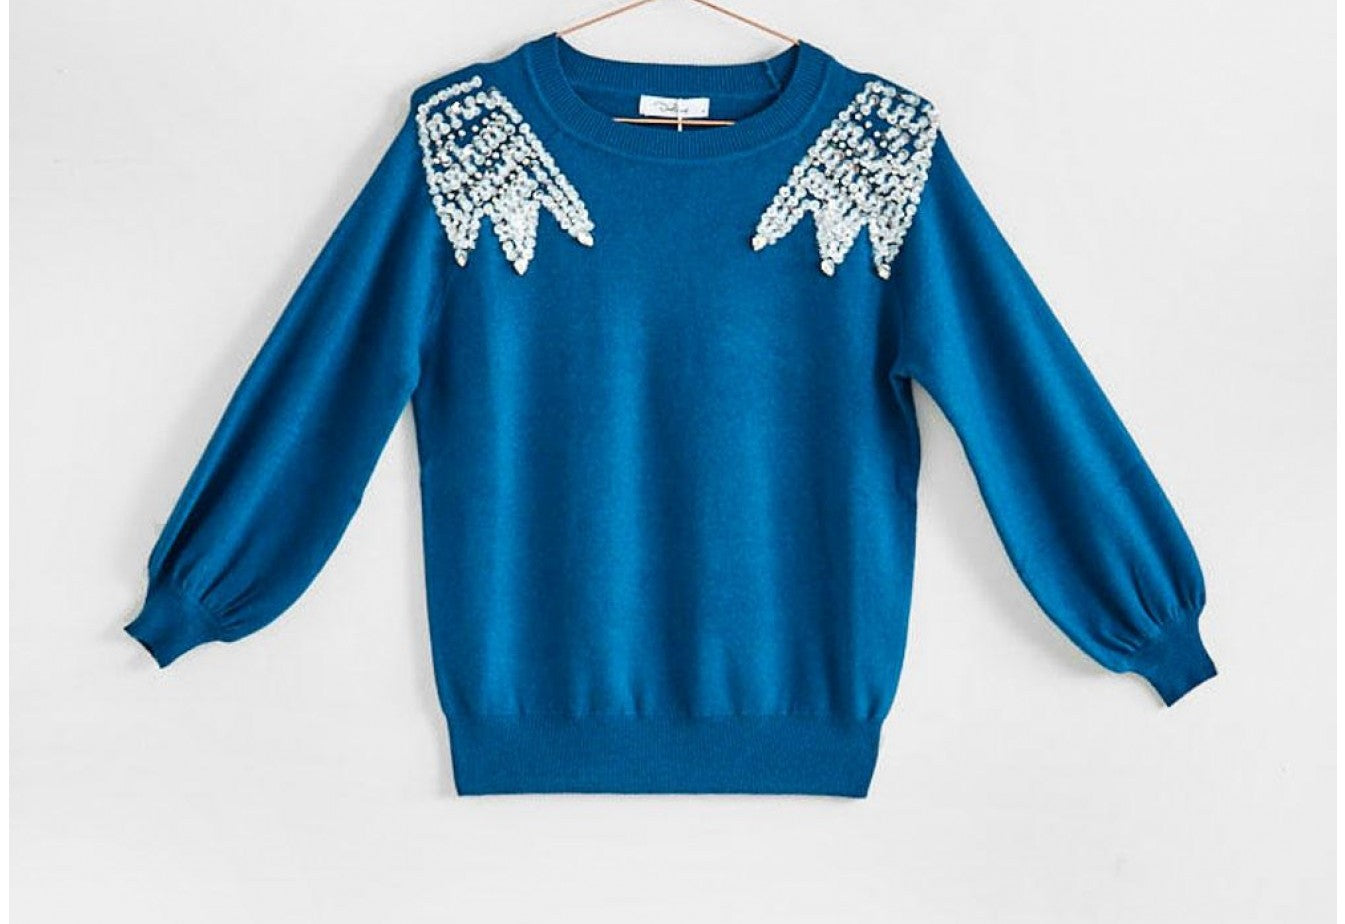 Darling knitwear teal  jumper